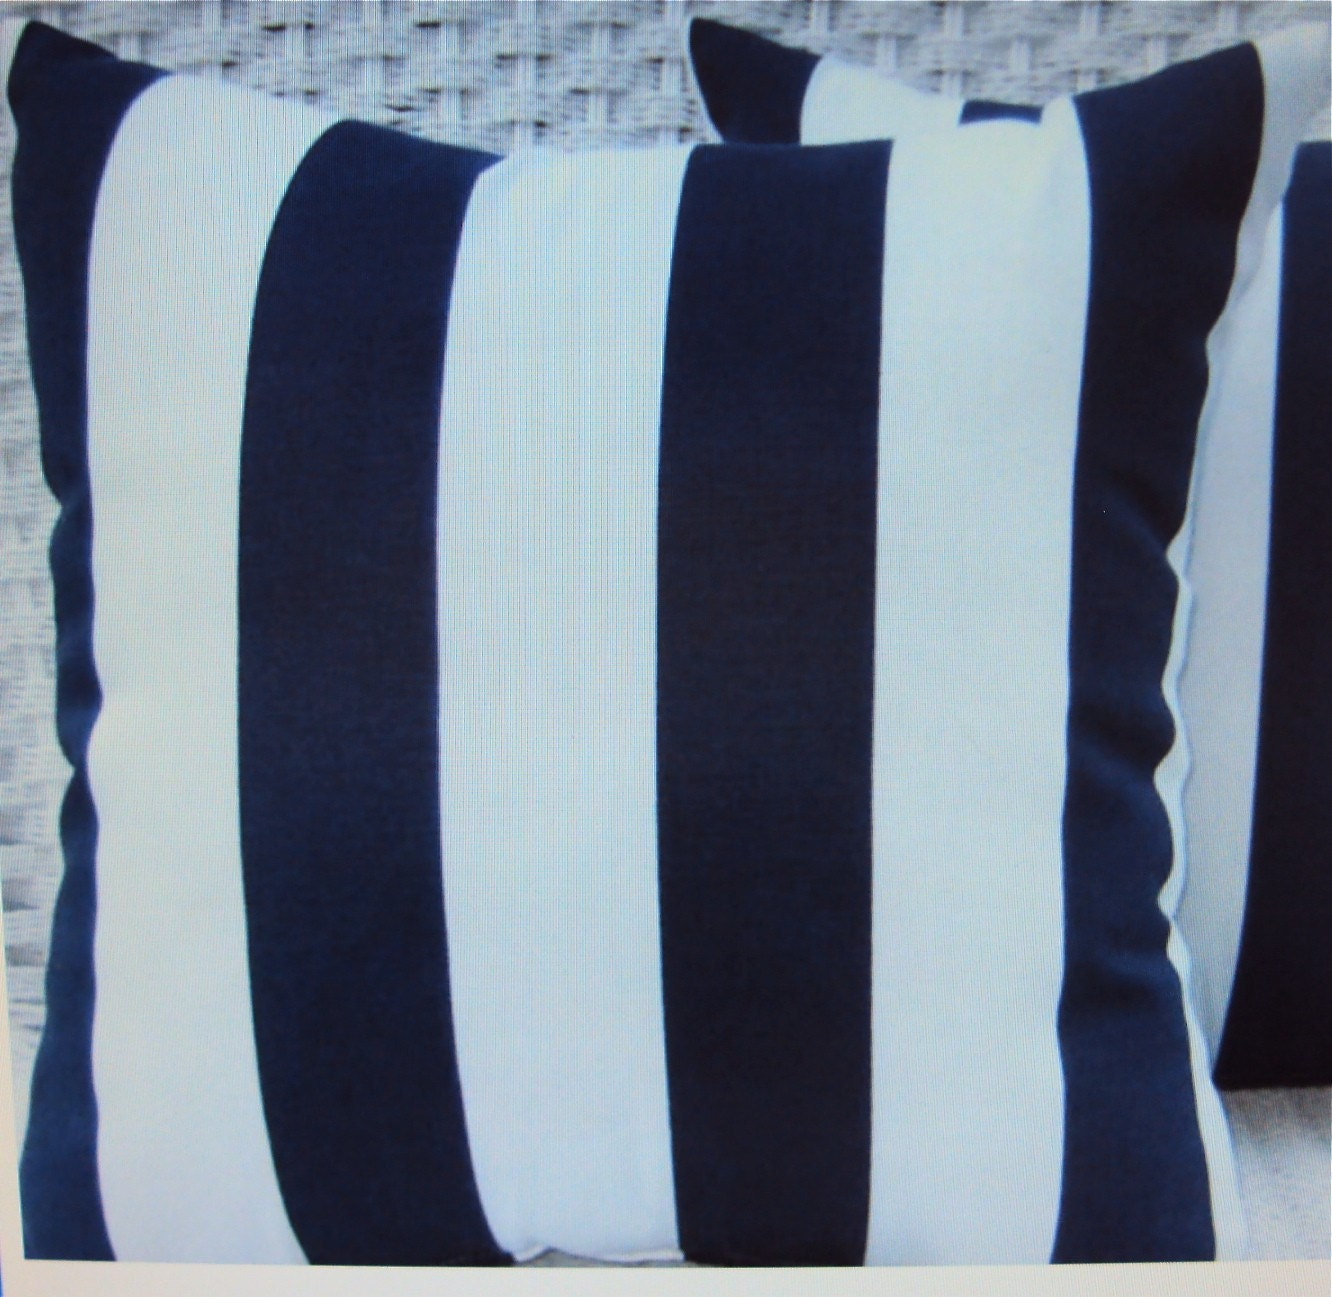 Buy Navy and White Striped Pillows from Bed Bath & Beyond